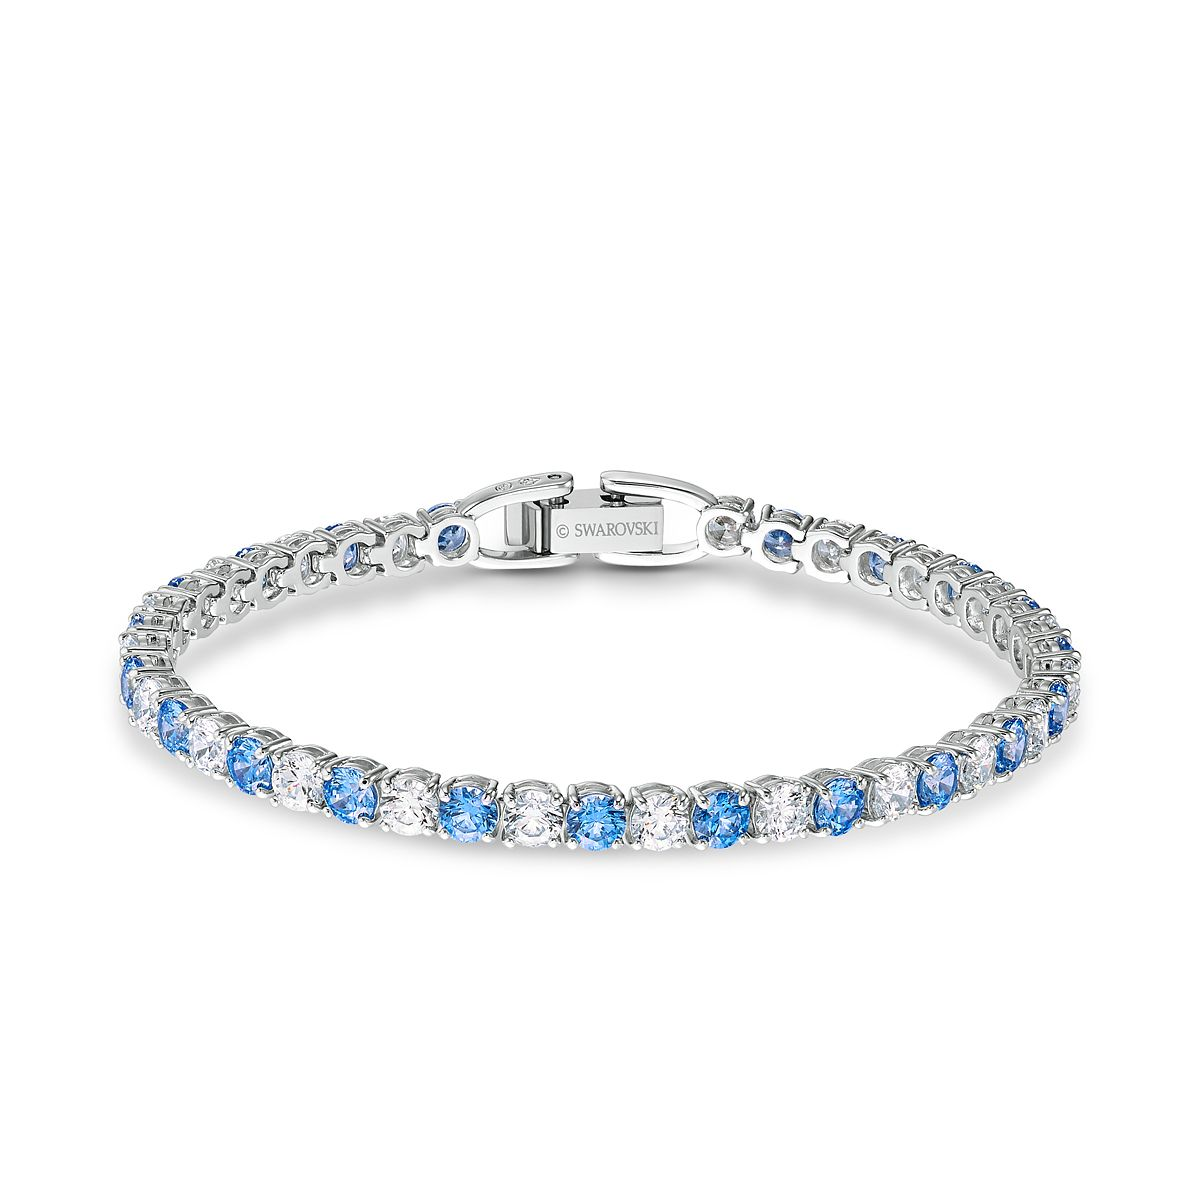 Swarovski Rhodium Plated Crystal Tennis Deluxe Bracelet - Product number 4128974